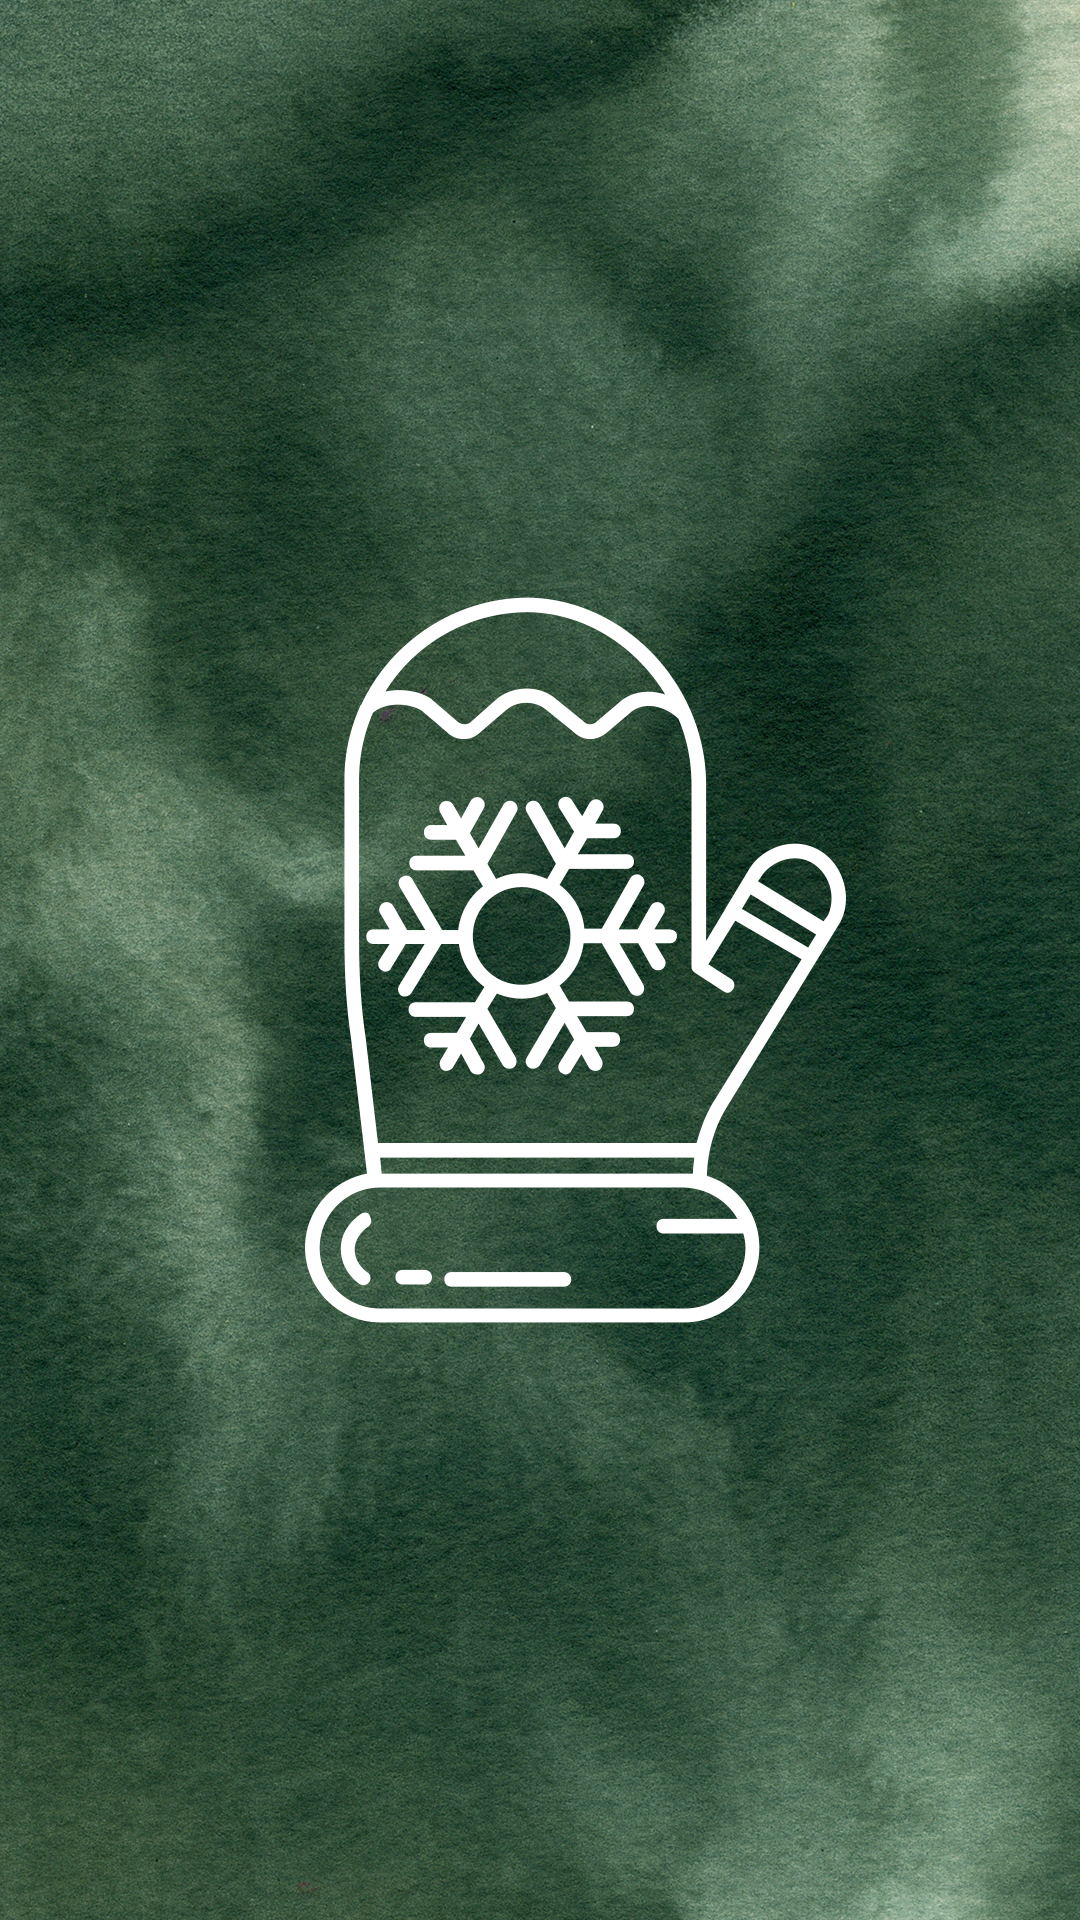 Christmas Icon For Instagram Highlights.Pin On Instagram Icons